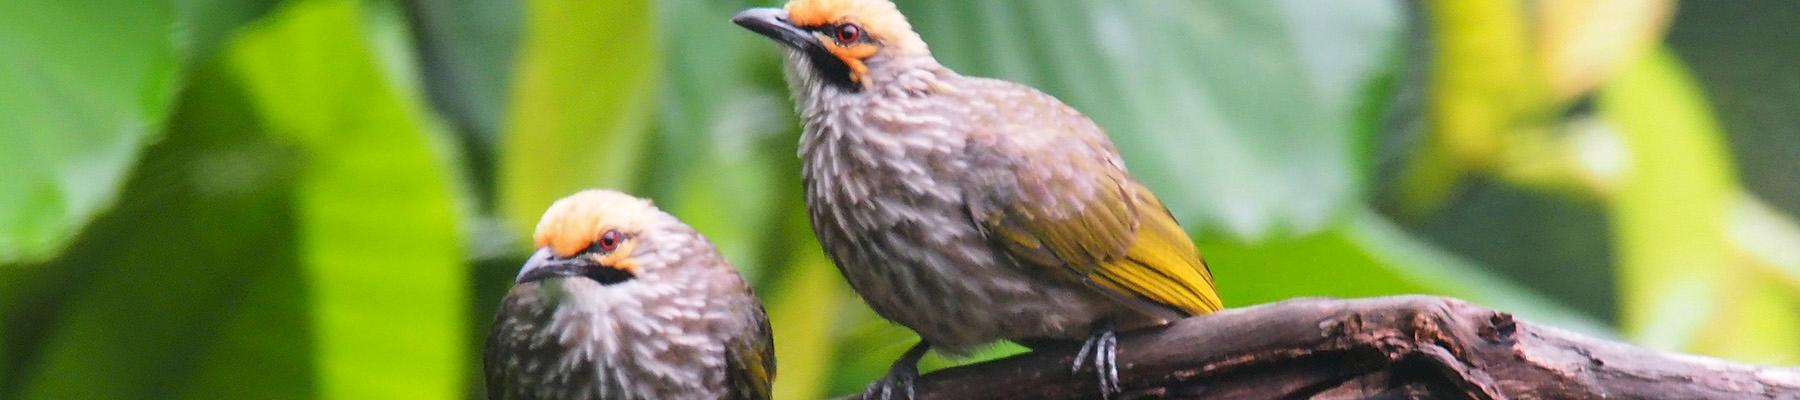 Straw-headed Bulbuls in the wild